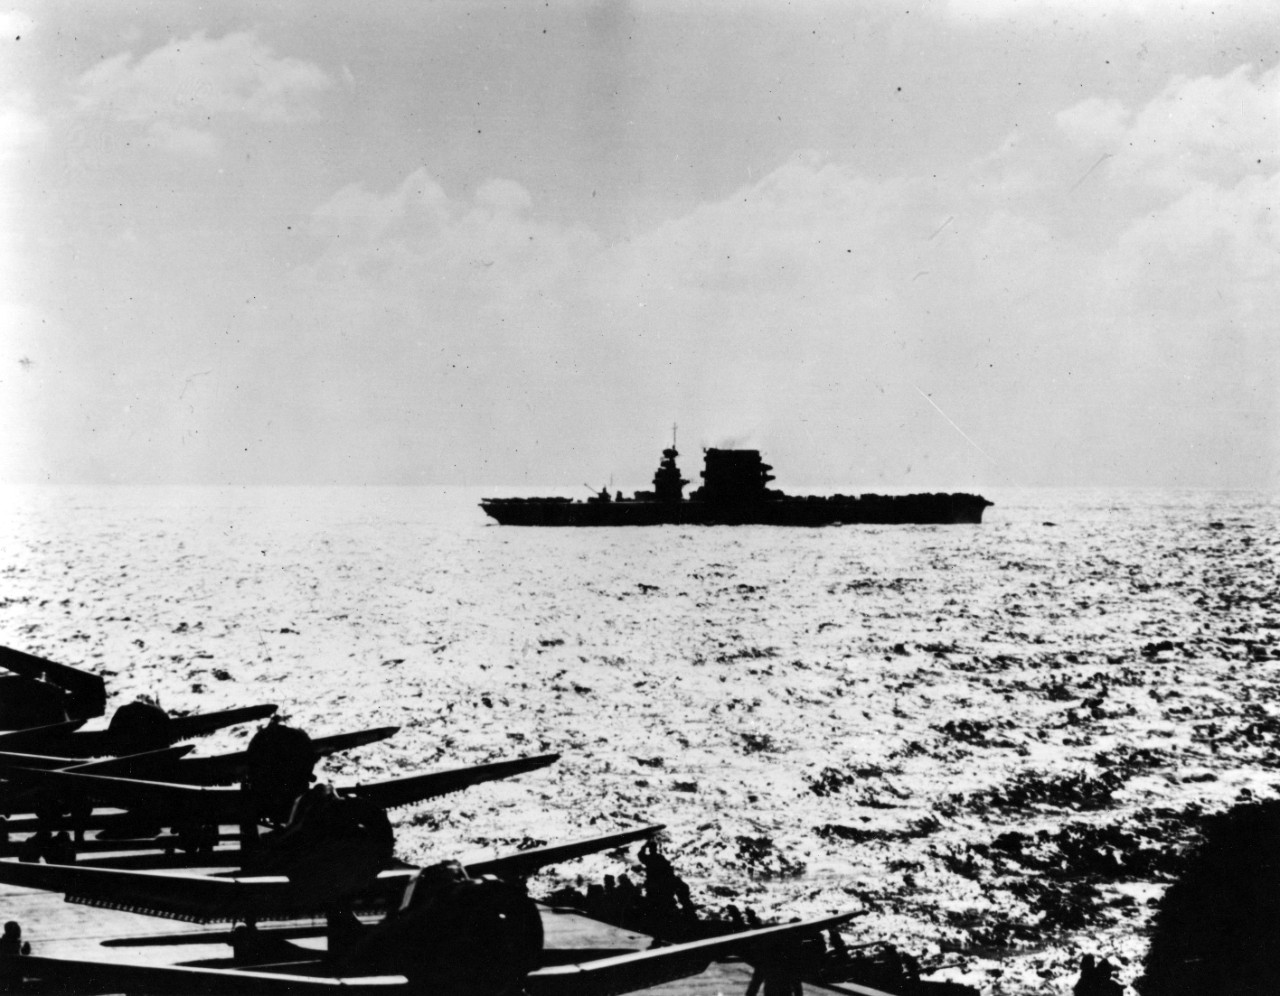 Photo #: 80-G-16569  Battle of Coral Sea, May 1942